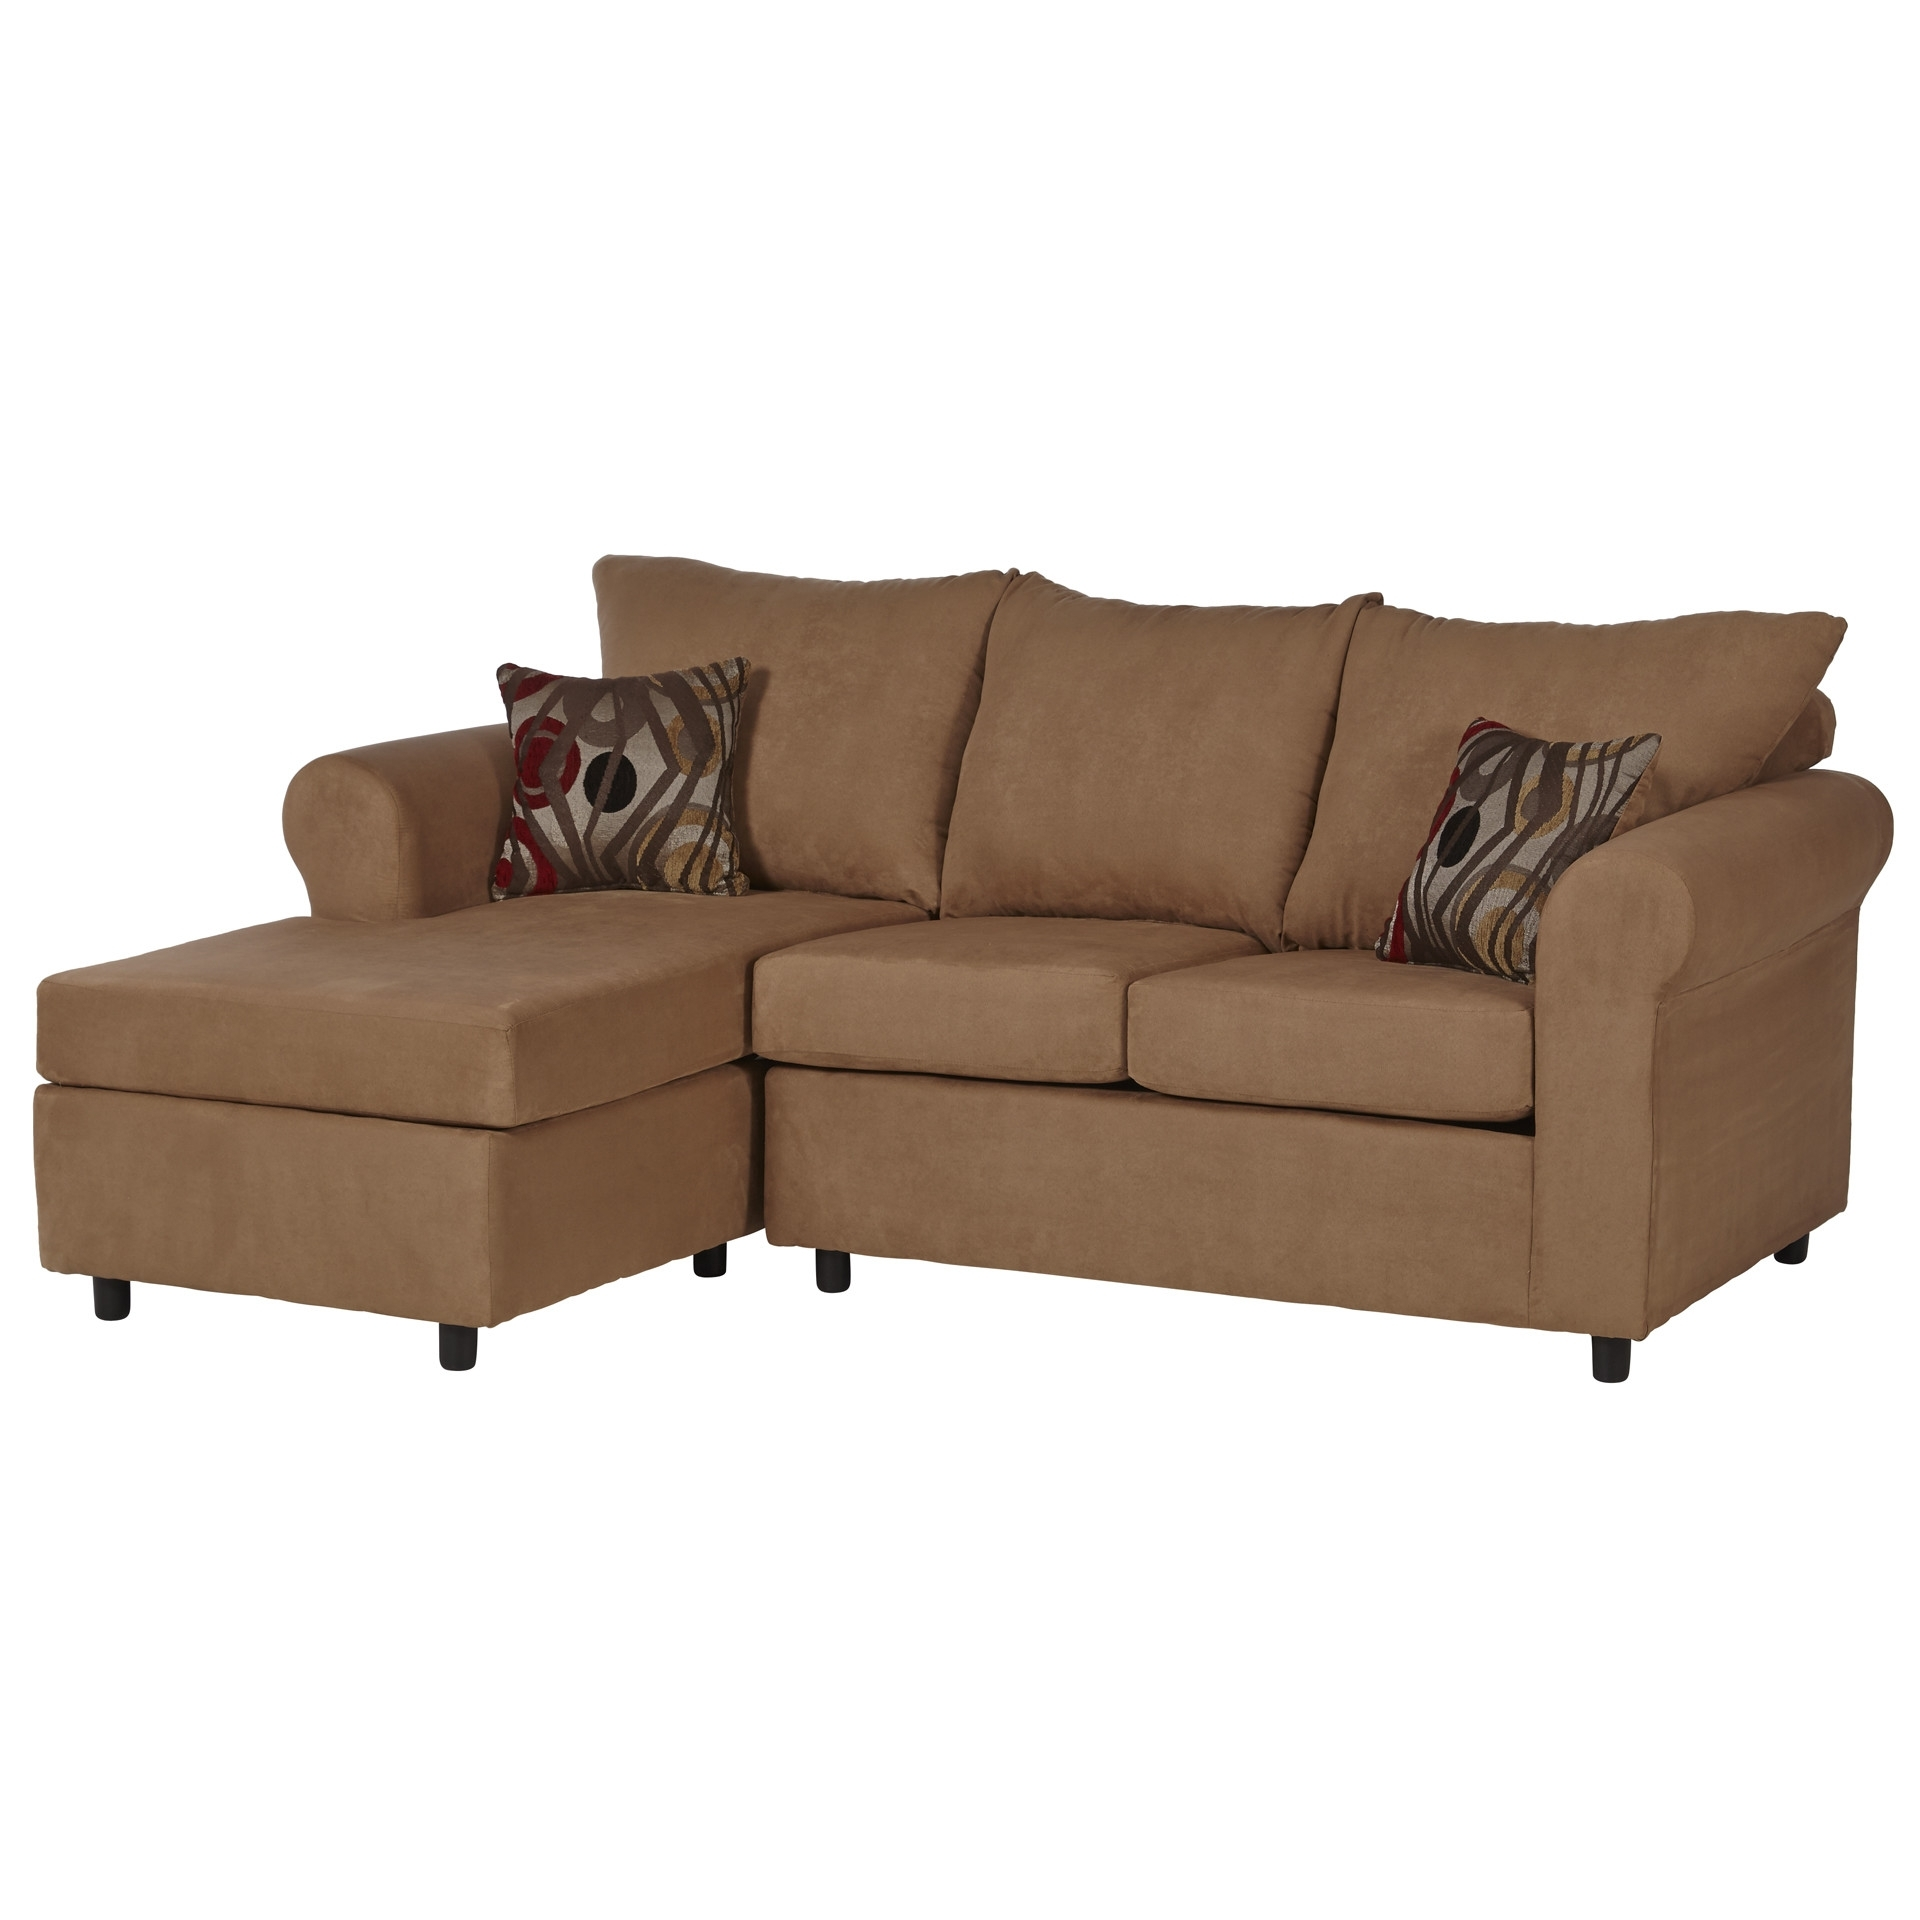 Sectional Sofa Design: Sofa Sectional With Chaise Lounge Cheap pertaining to Meyer 3 Piece Sectionals With Laf Chaise (Image 21 of 30)